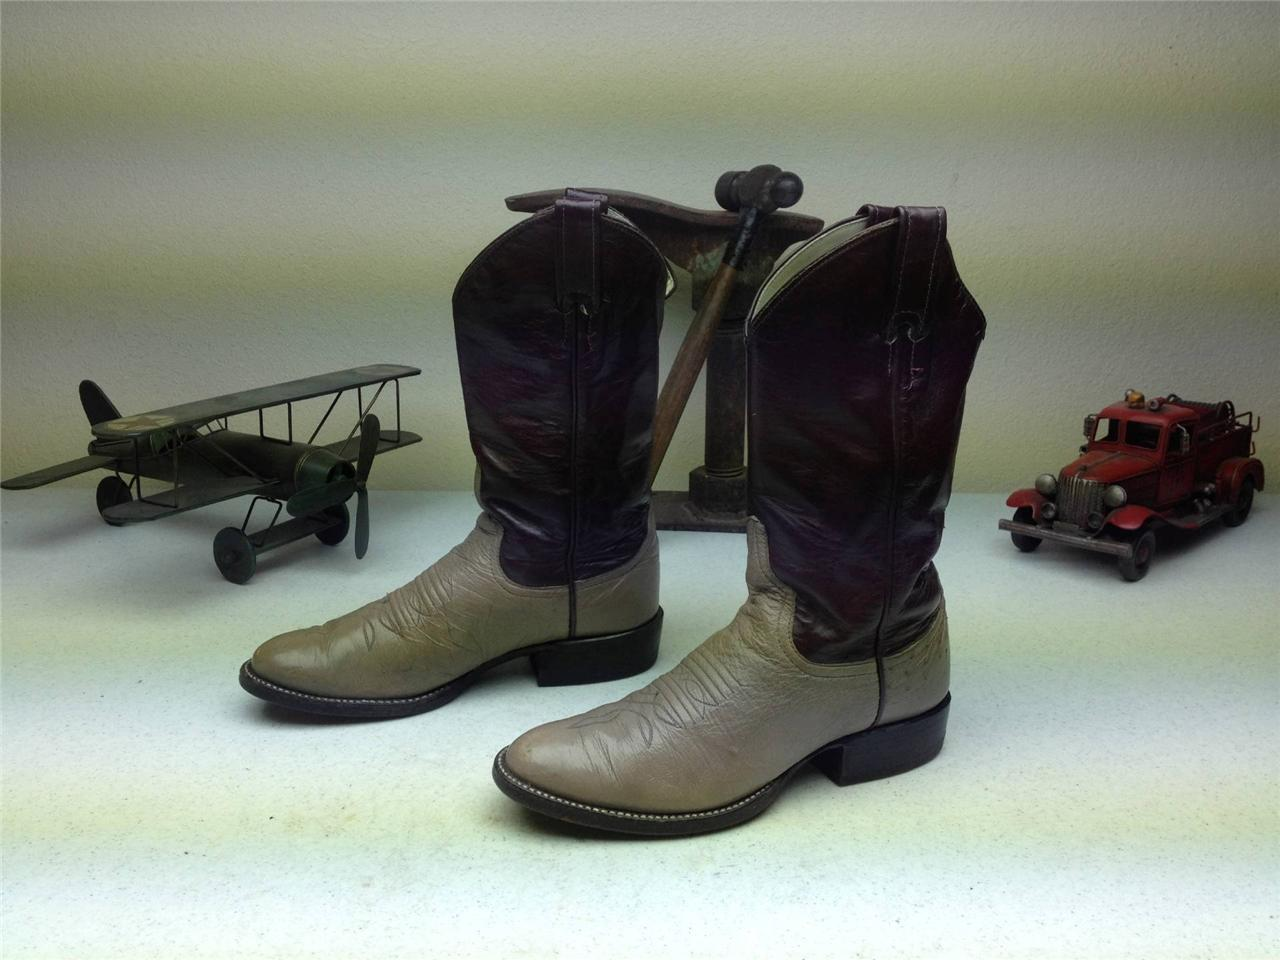 LARRY MAHAN MADE IN USA TAUPE LAVENDER DISTRESSED WESTERN COWBOY BOOTS SIZE 6B